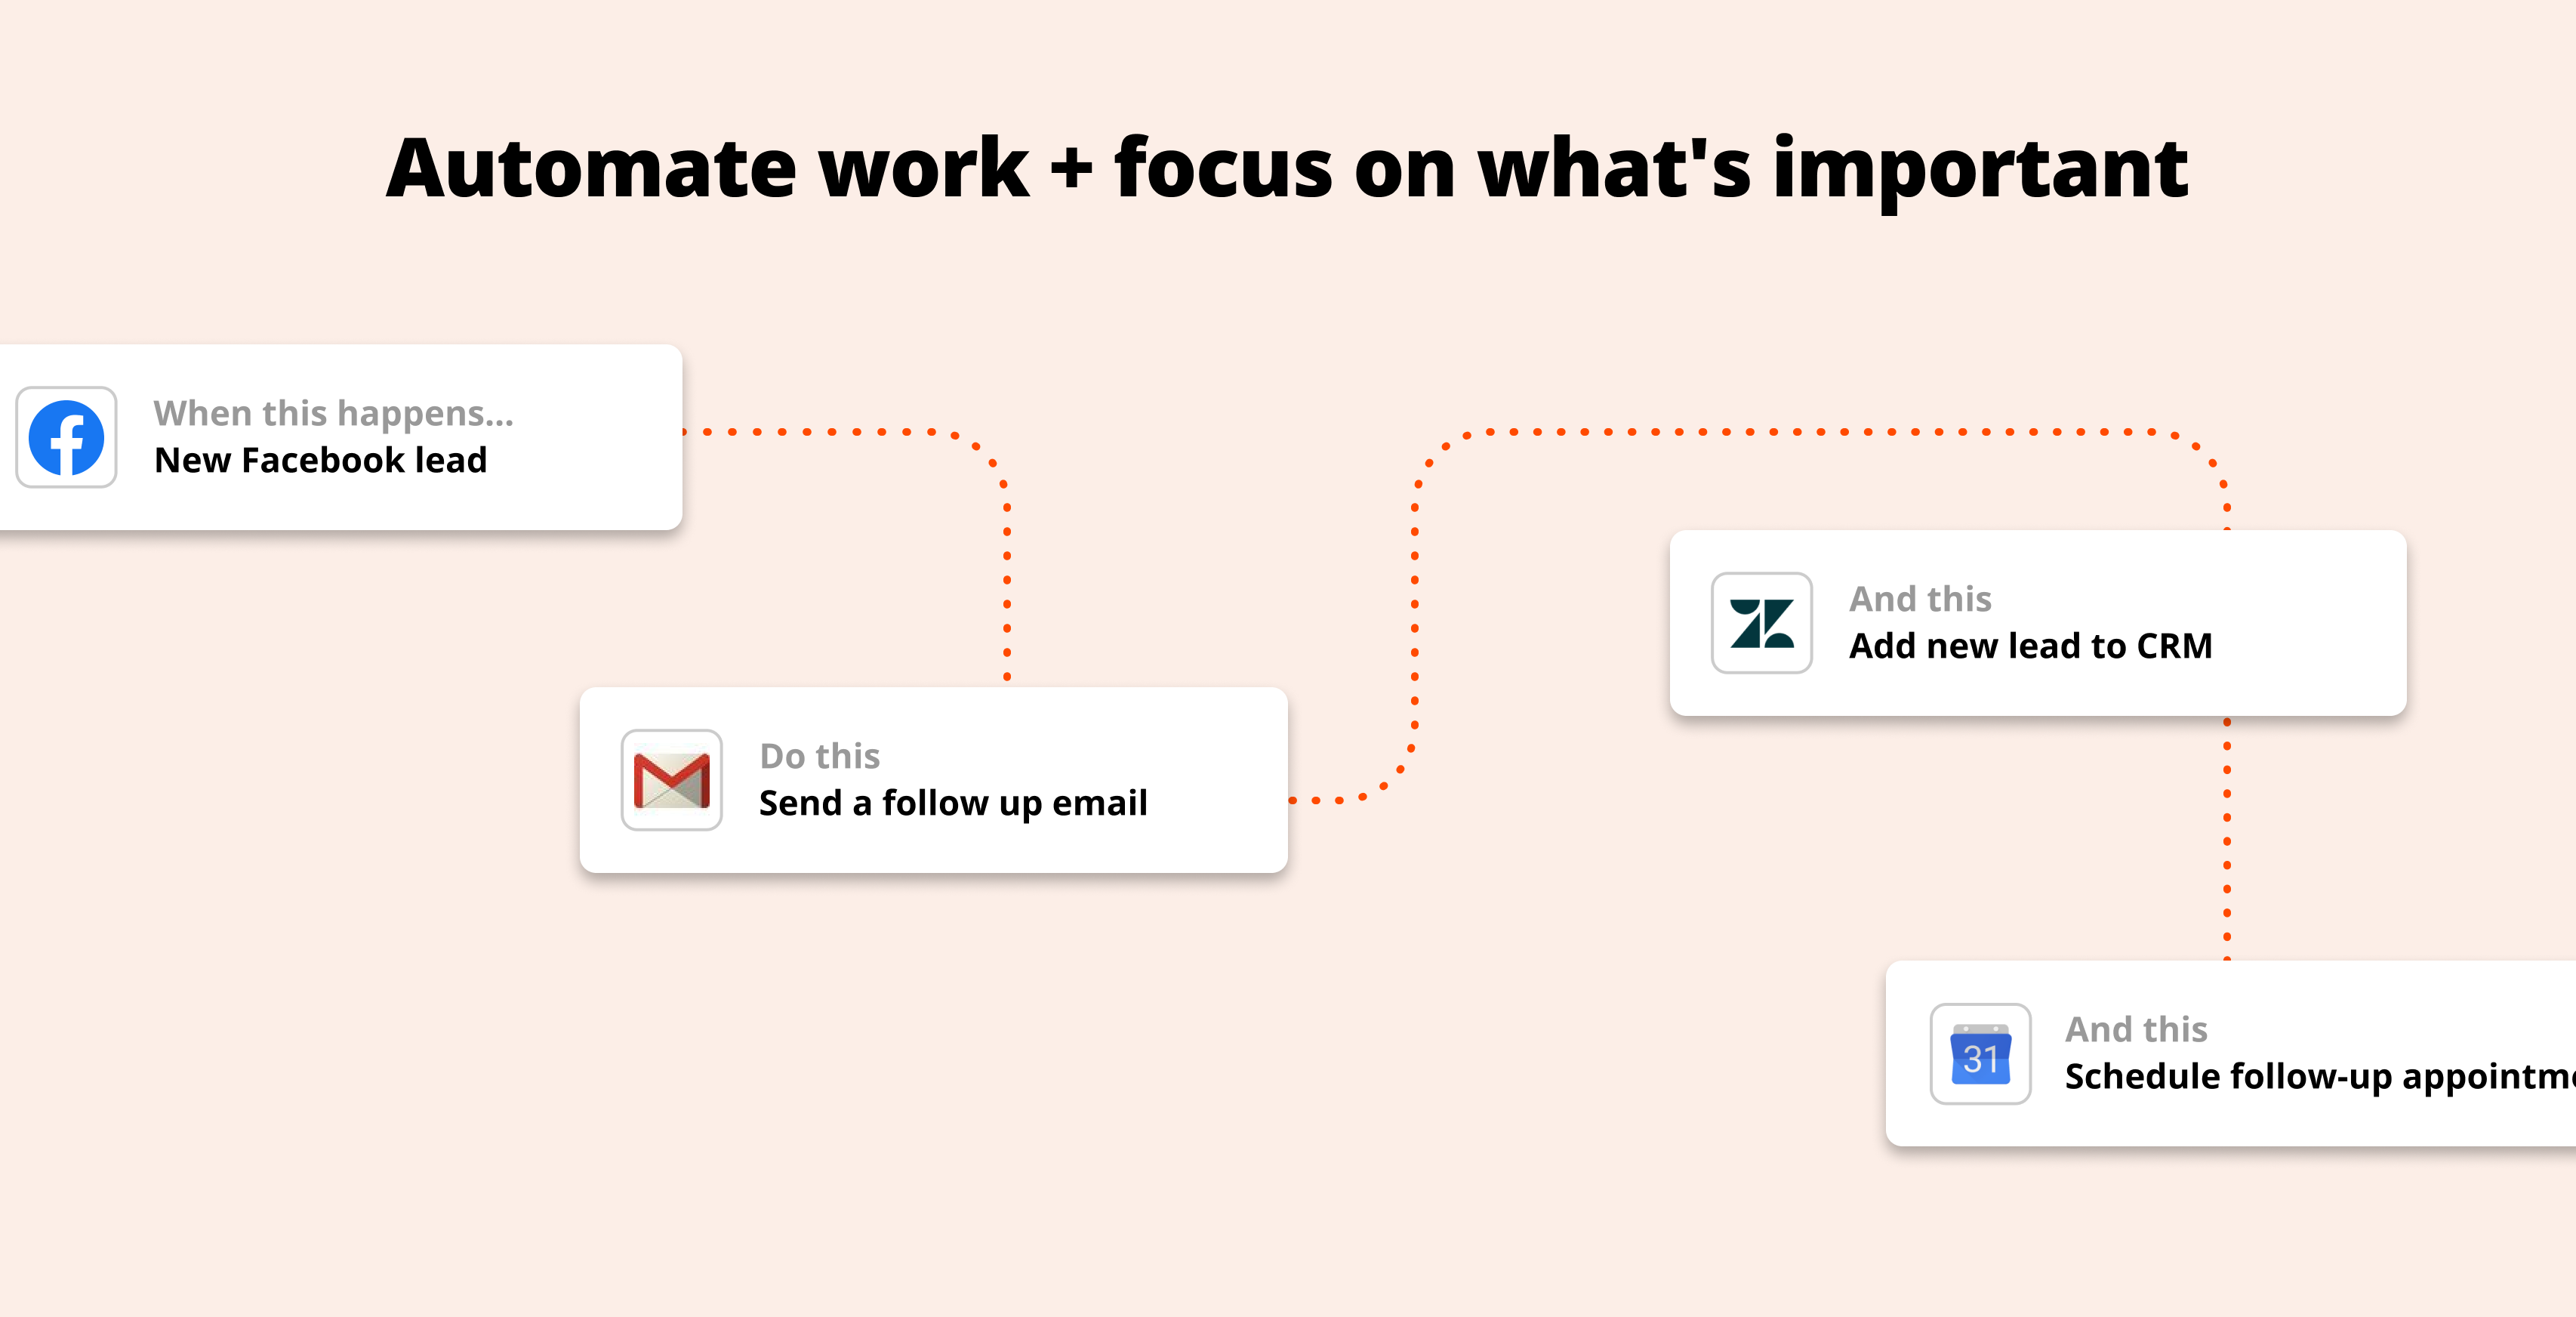 Automate your work and save time to focus on what's important